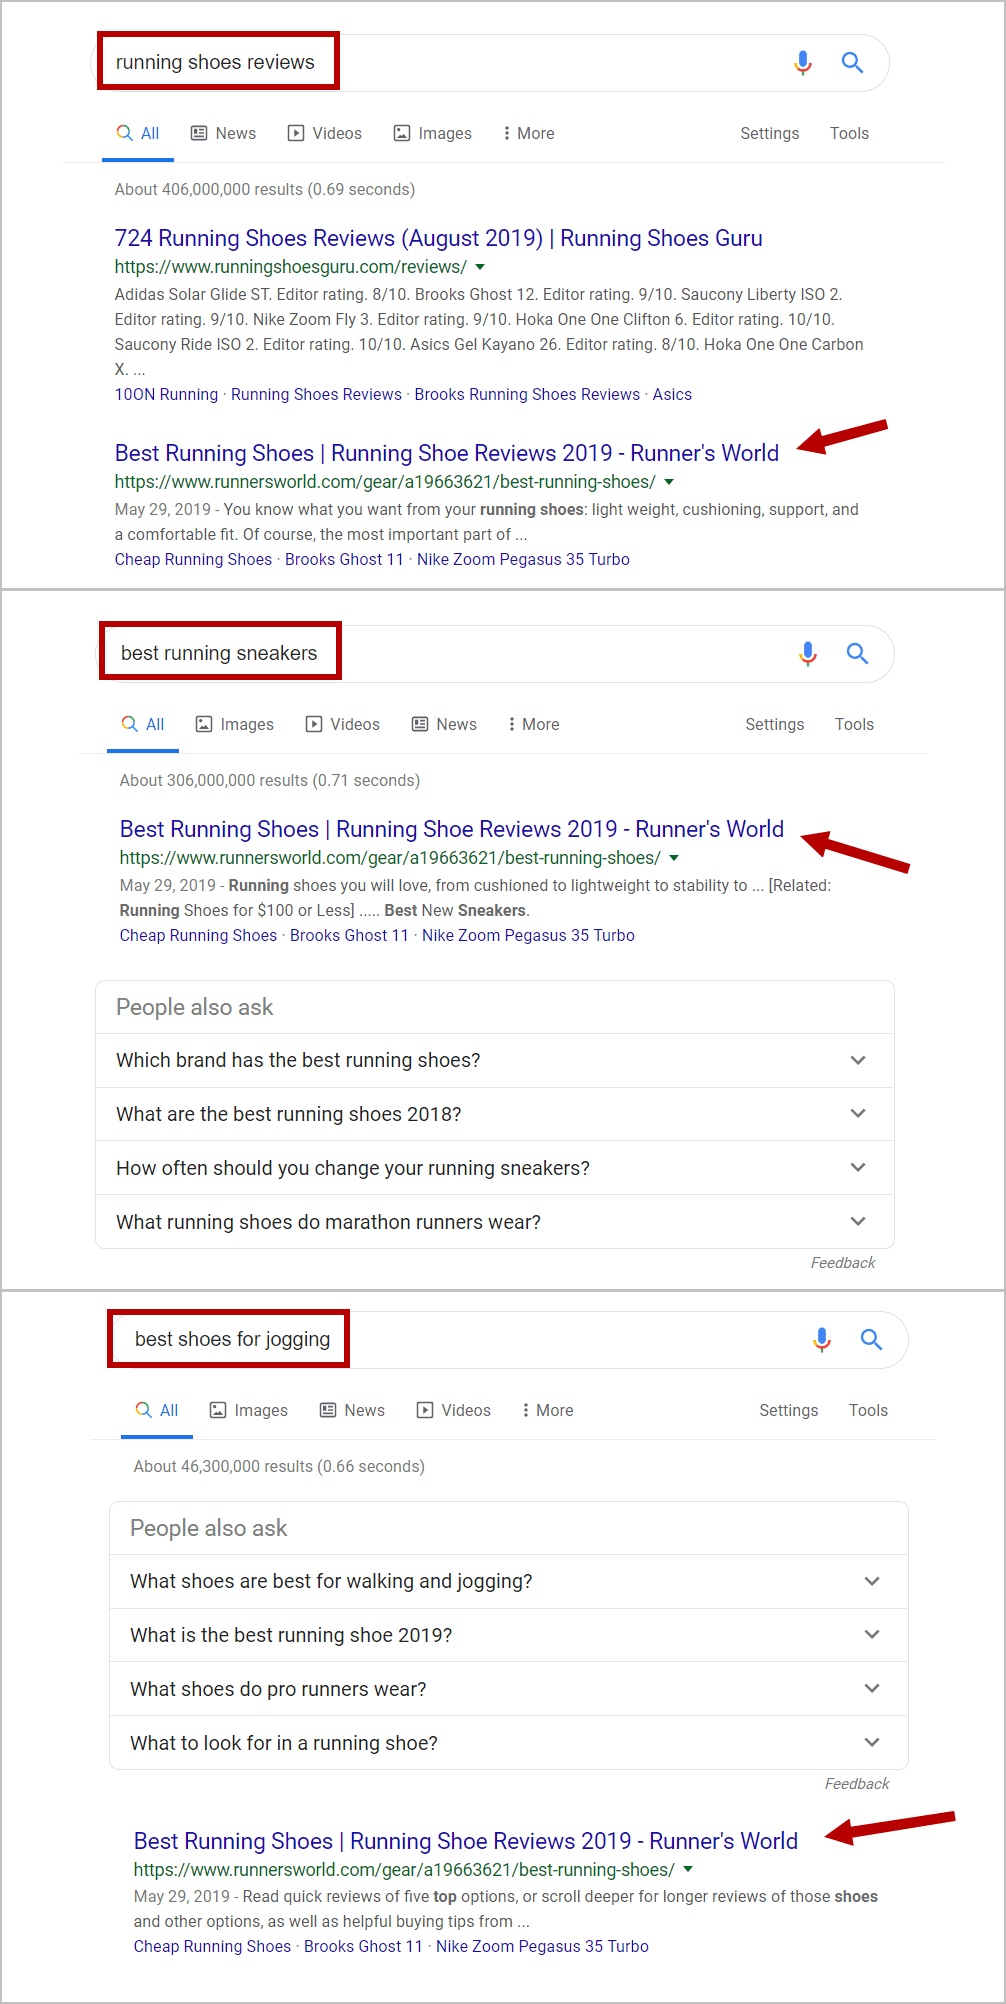 SERP results with one page ranking for 3 different keywords thanks to the topic relevancy